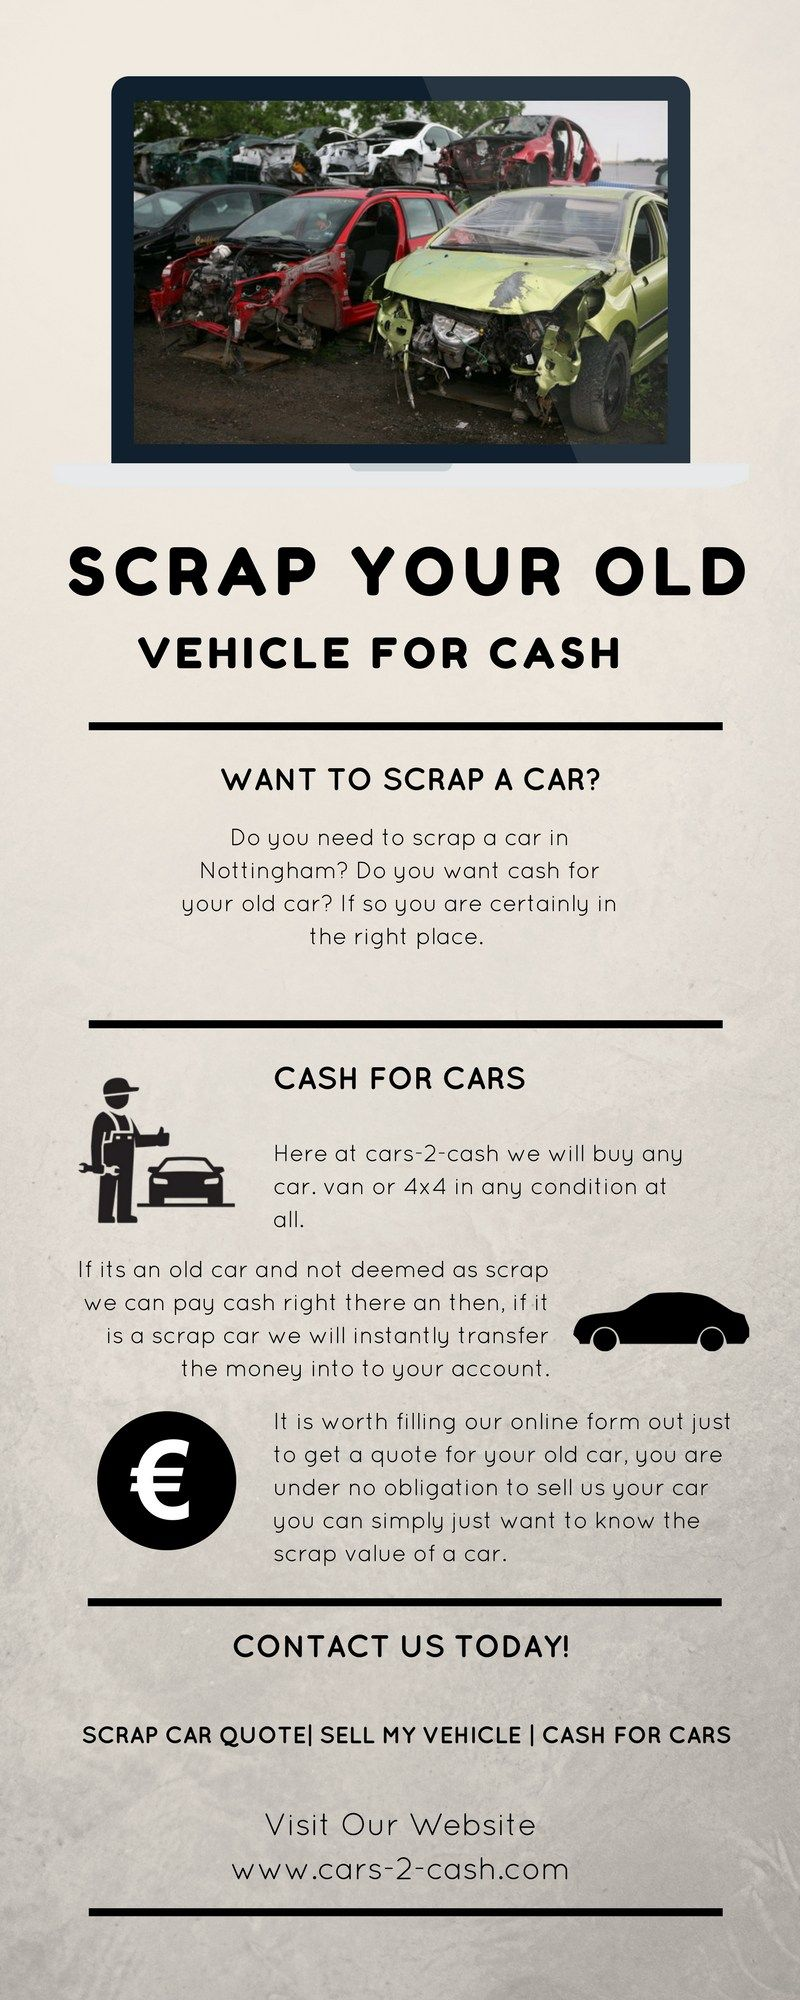 Scrap Old Vehicle For Cash https://www.liveinfographic.com/i/scrap ...